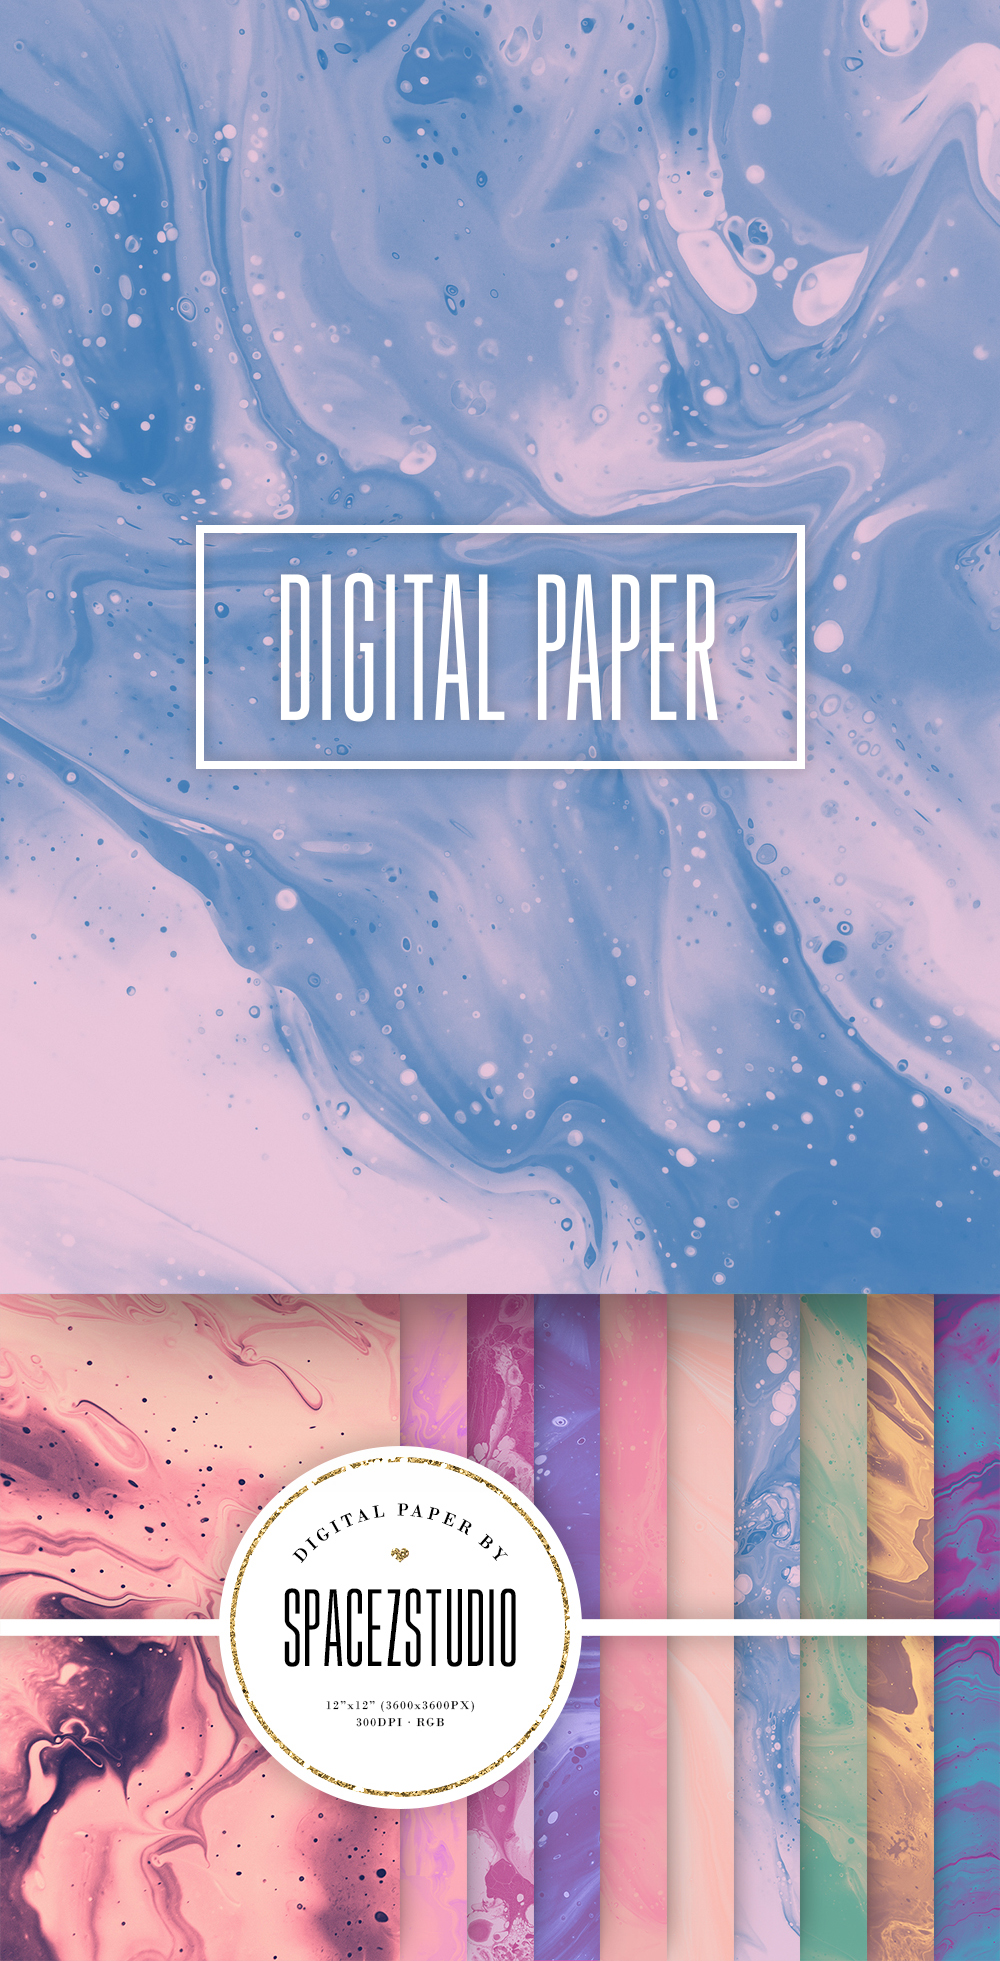 Muted Pastel Ink Backgrounds - Mix Color Digital Paper Pack example image 6